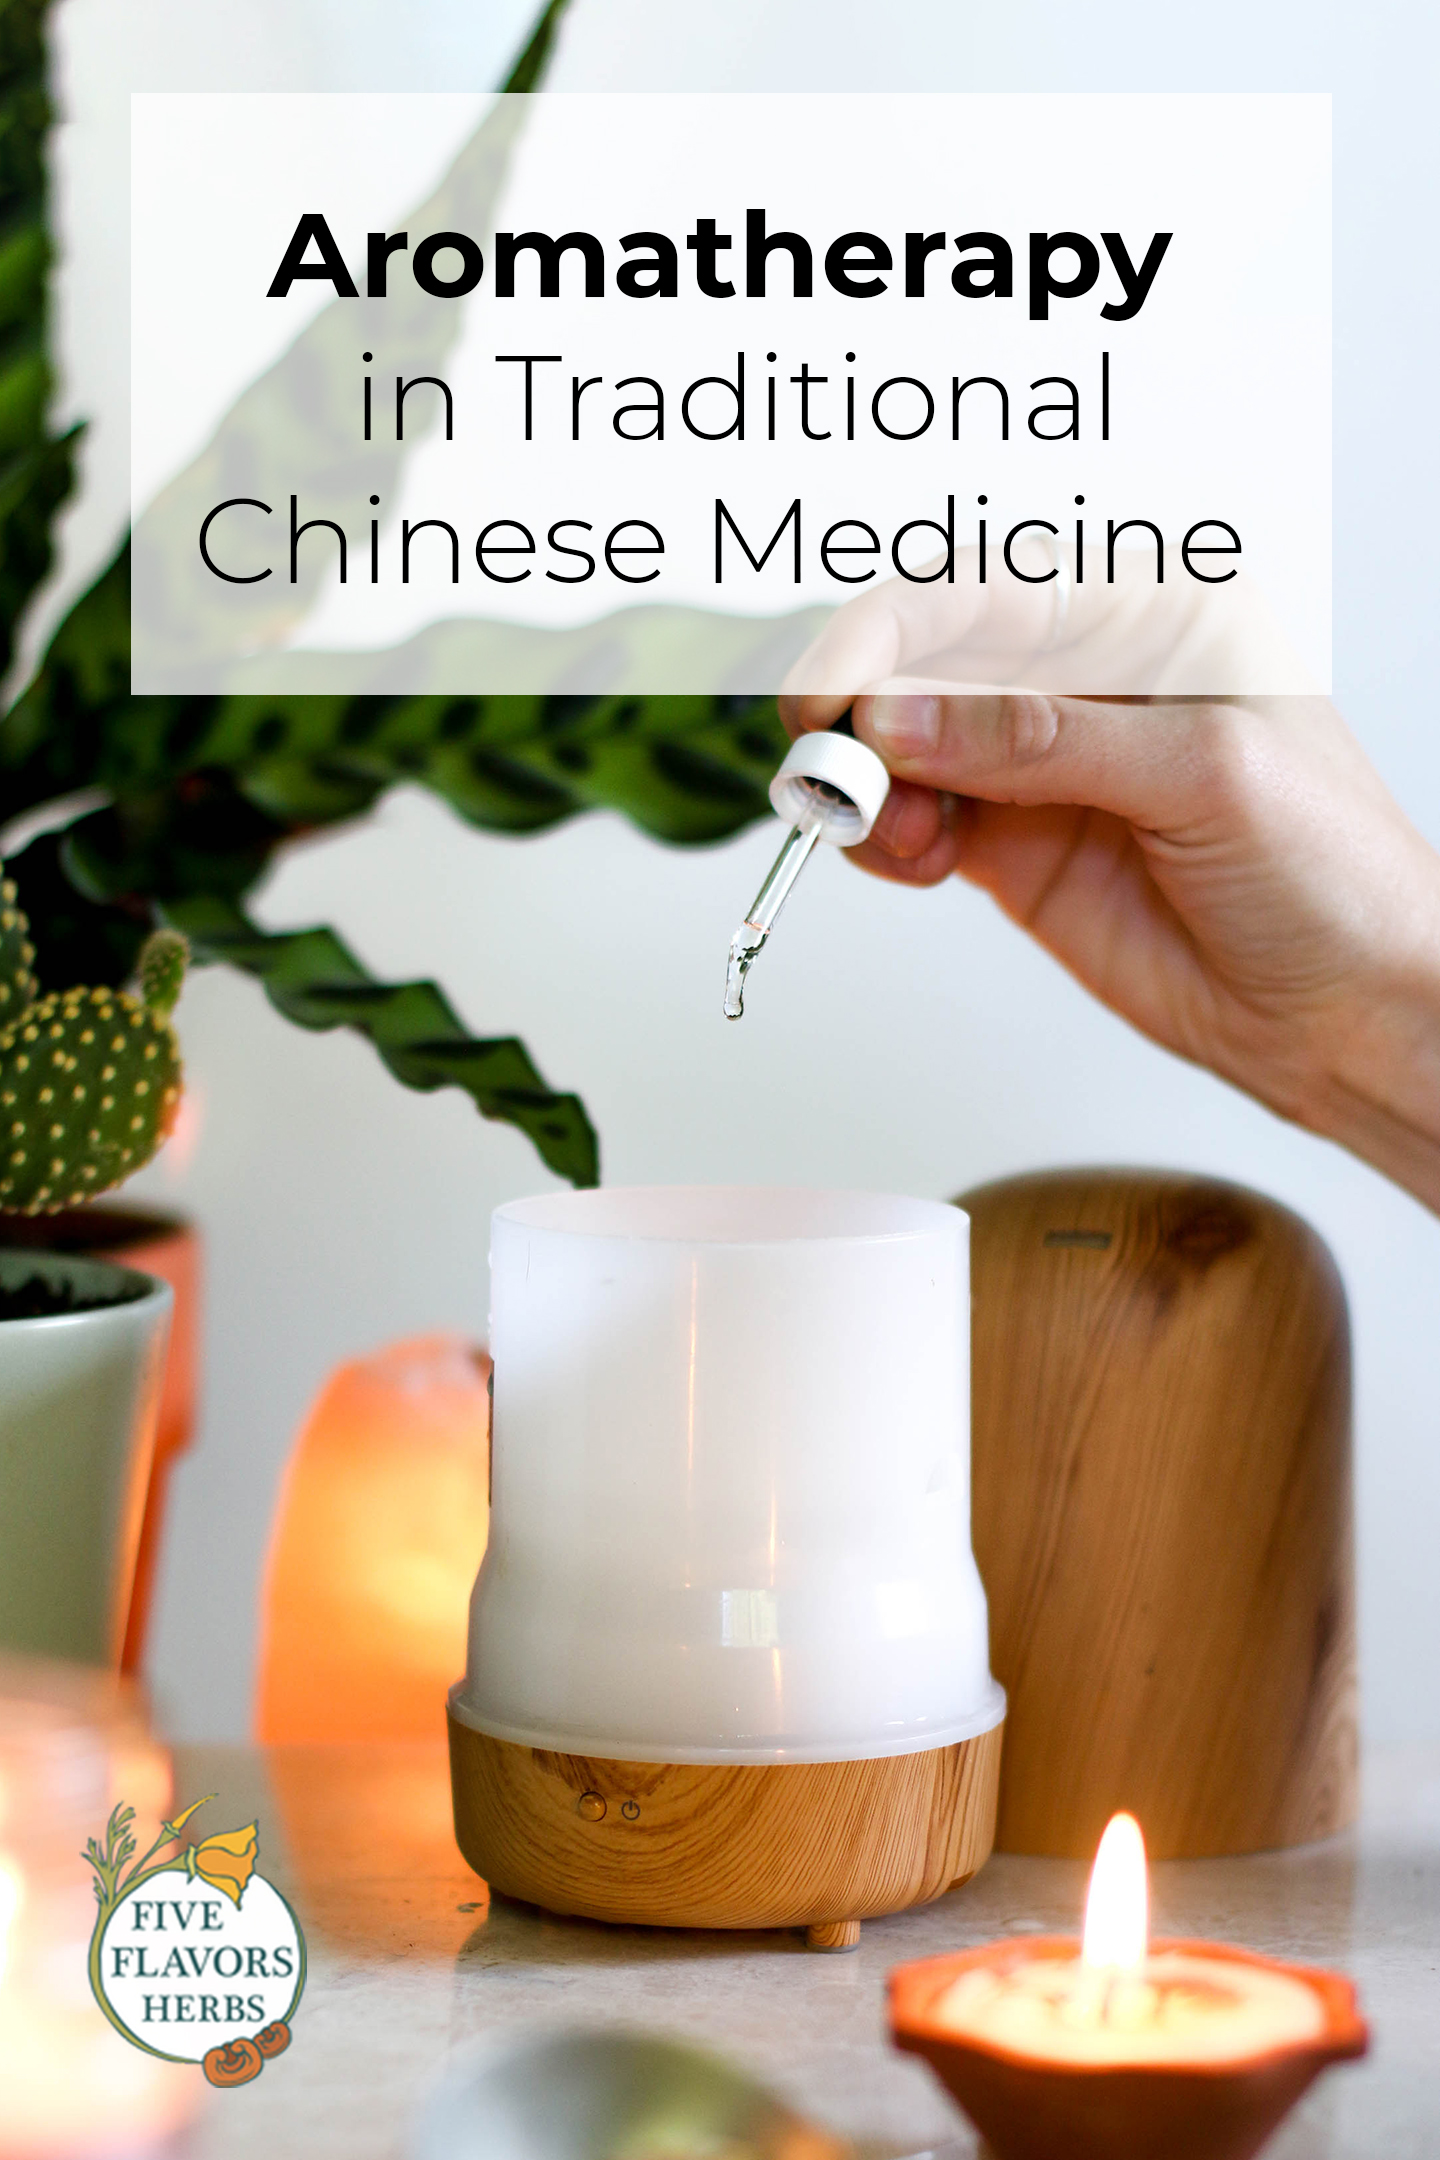 aromatherapy-in-traditional-chinese-medicine-pin-from-five-flavors-herbs